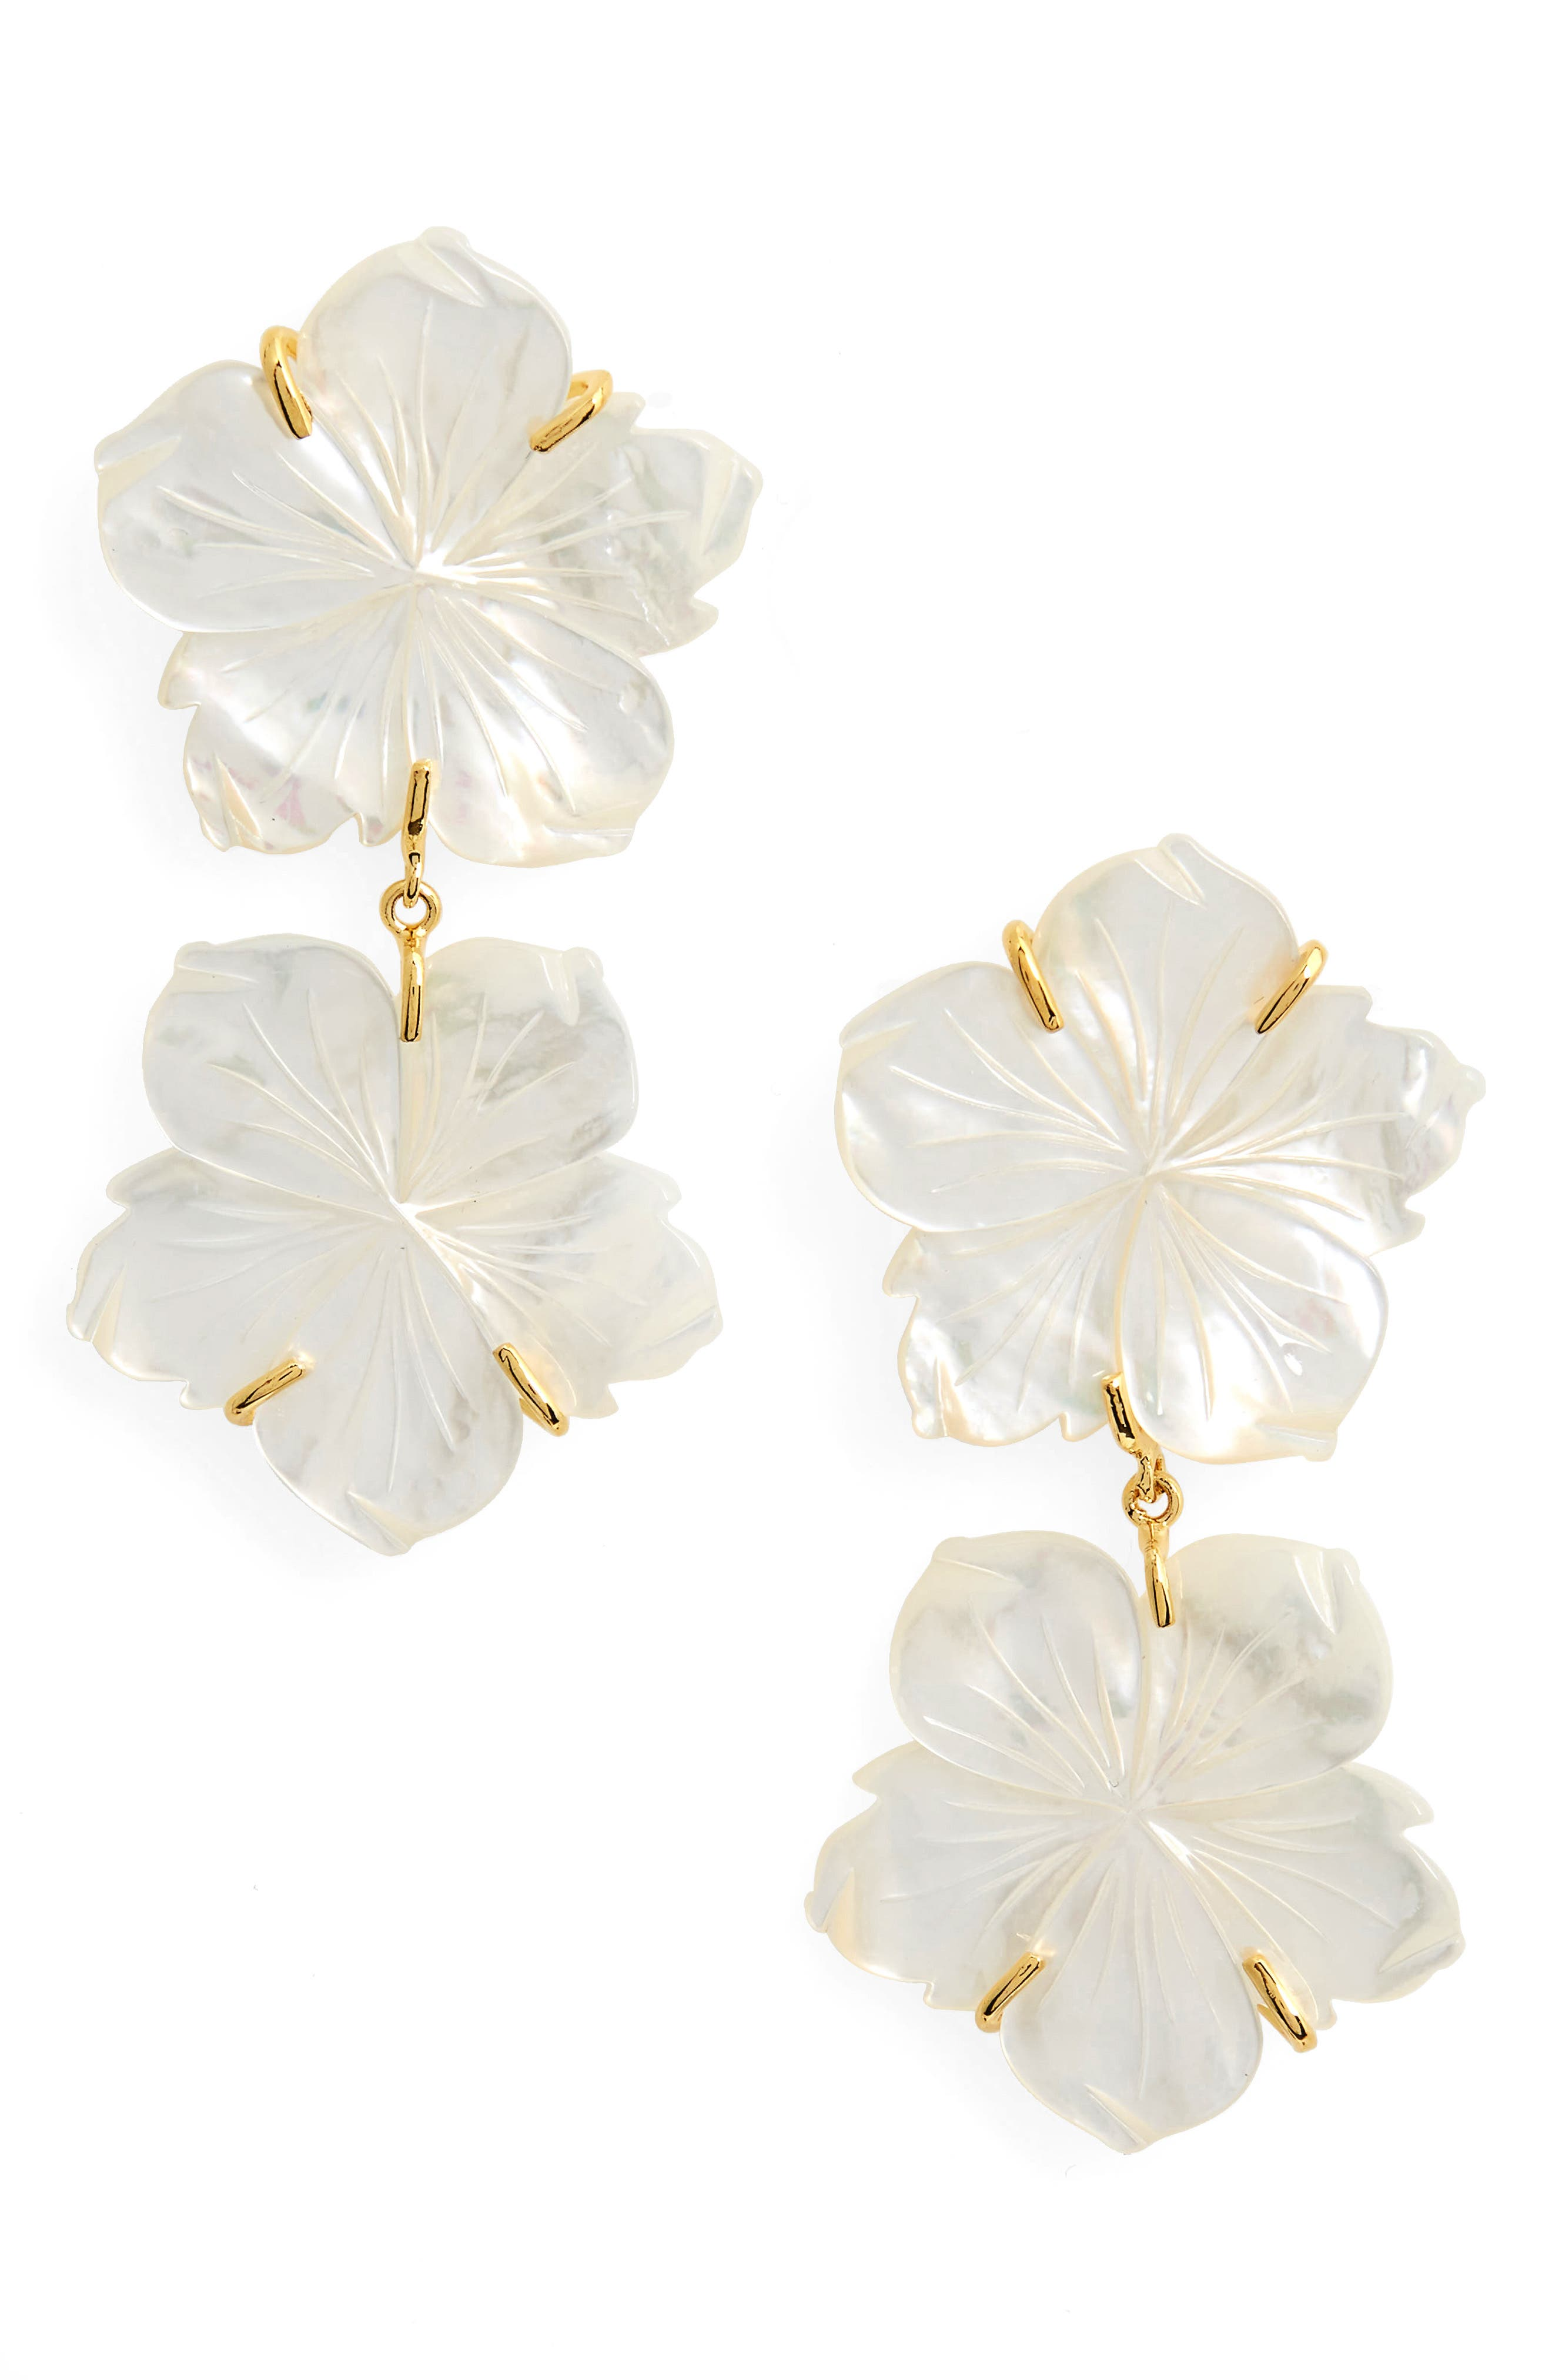 Paperwhite Drop Earrings,                         Main,                         color, 900